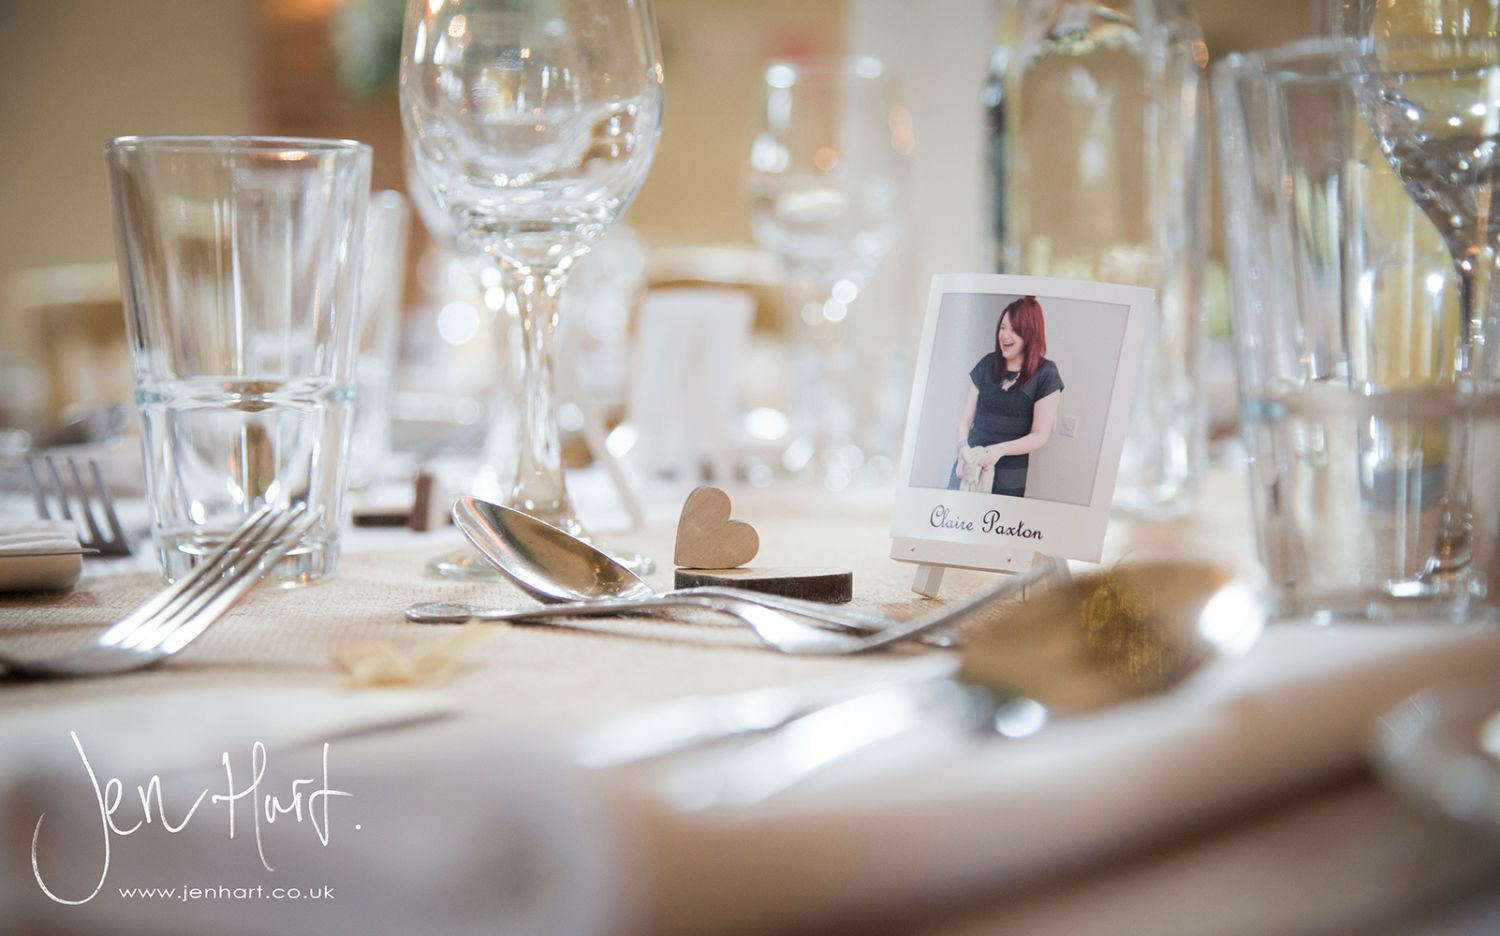 Photograph-Wedding-Whinstone-View_02May15_218